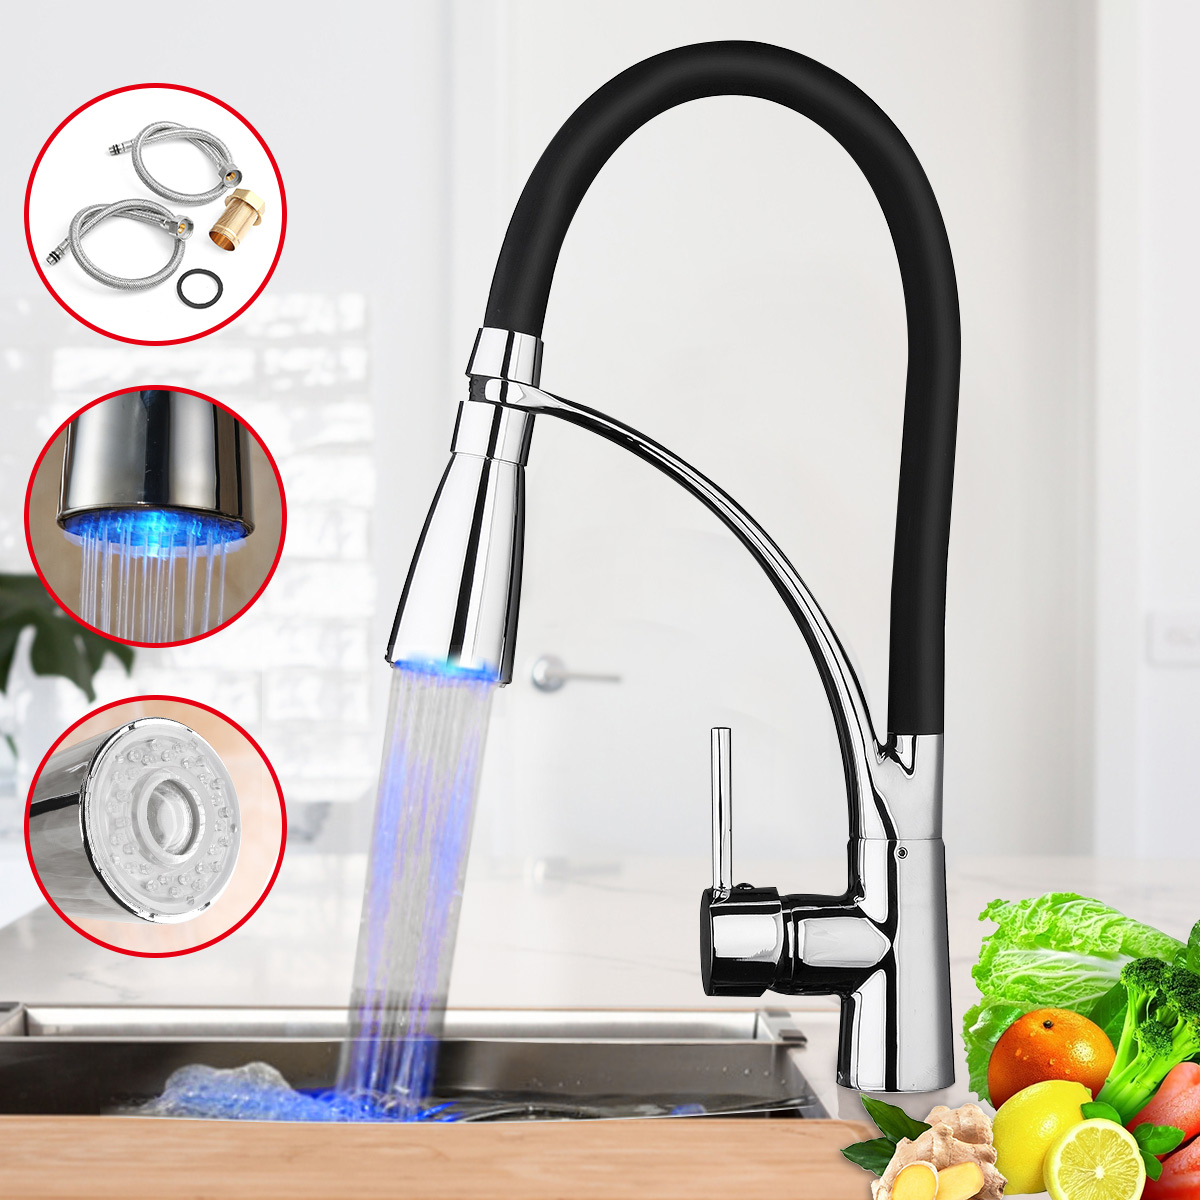 Modern LED Hole Kitchen Spring Faucet Cooper Sink Mixer Tap Single Handle With Sprayer For Home Kitchen BathroomModern LED Hole Kitchen Spring Faucet Cooper Sink Mixer Tap Single Handle With Sprayer For Home Kitchen Bathroom